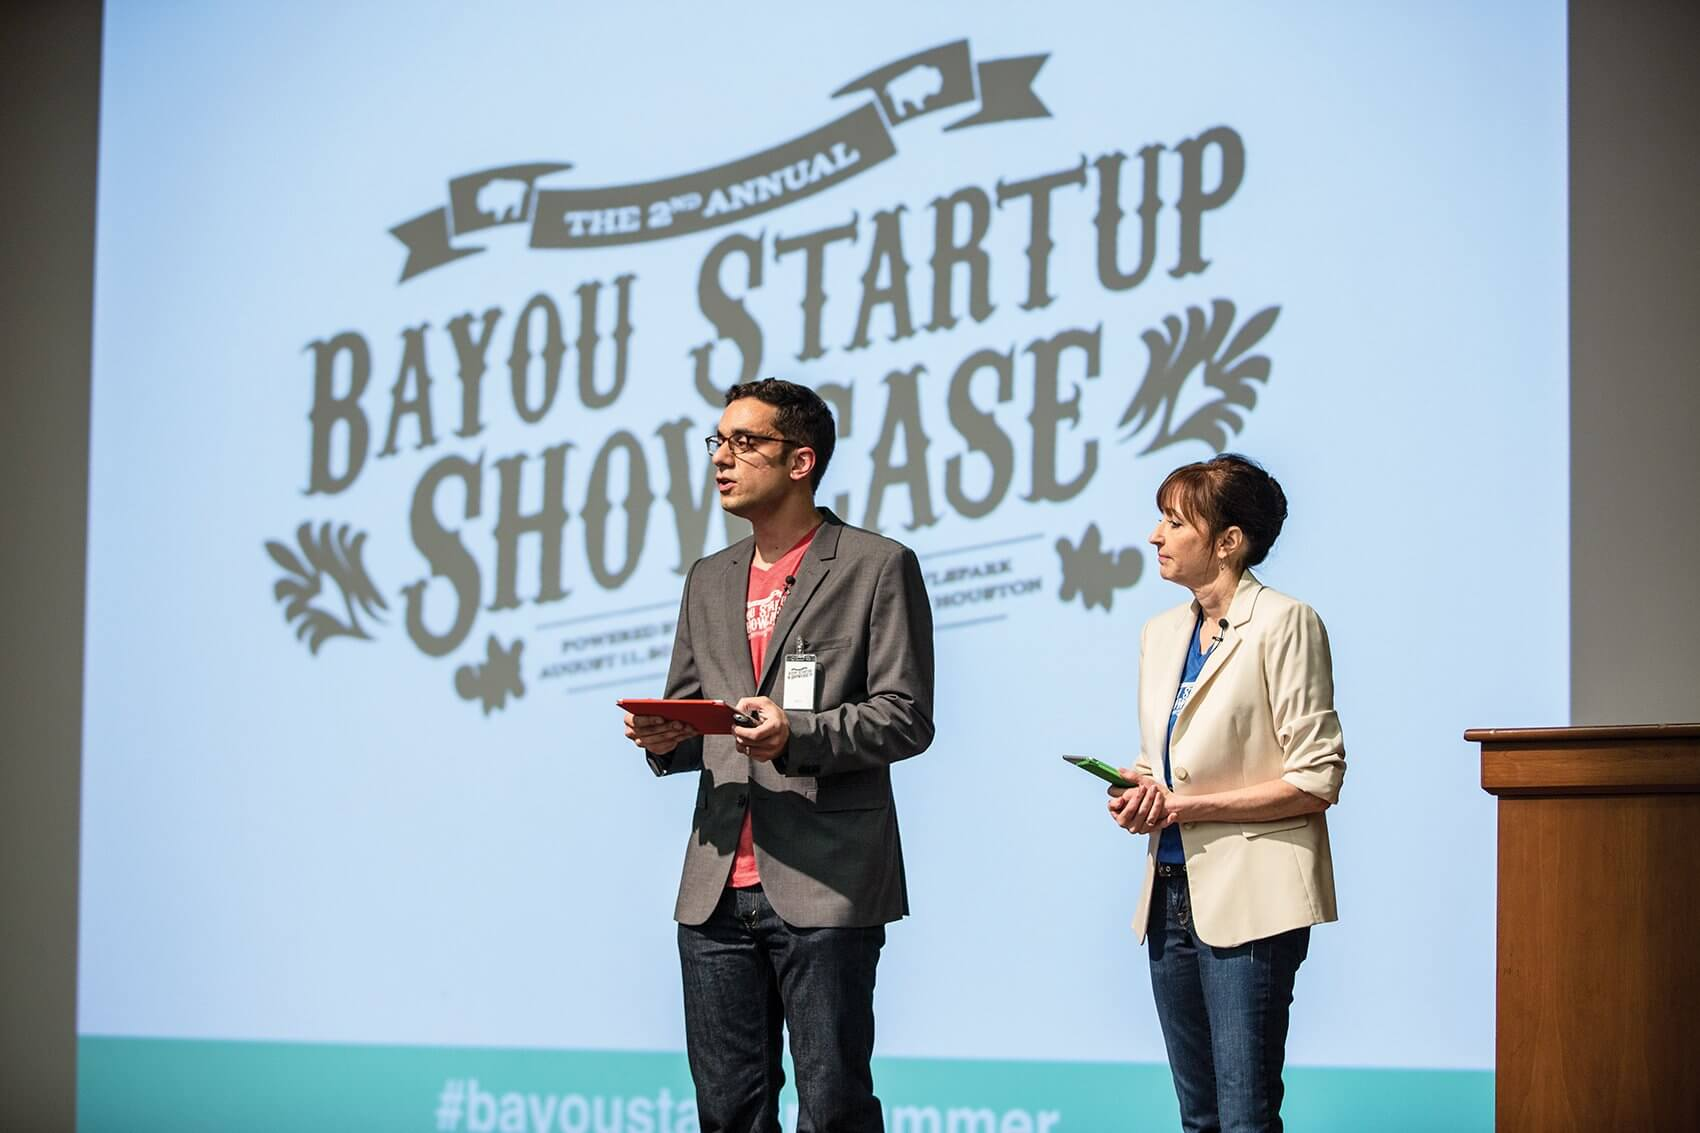 Hesam Panahi, Ph.D., and Kerri Smith, kick off the second annual Bayou Startup Showcase at the University of Houston.